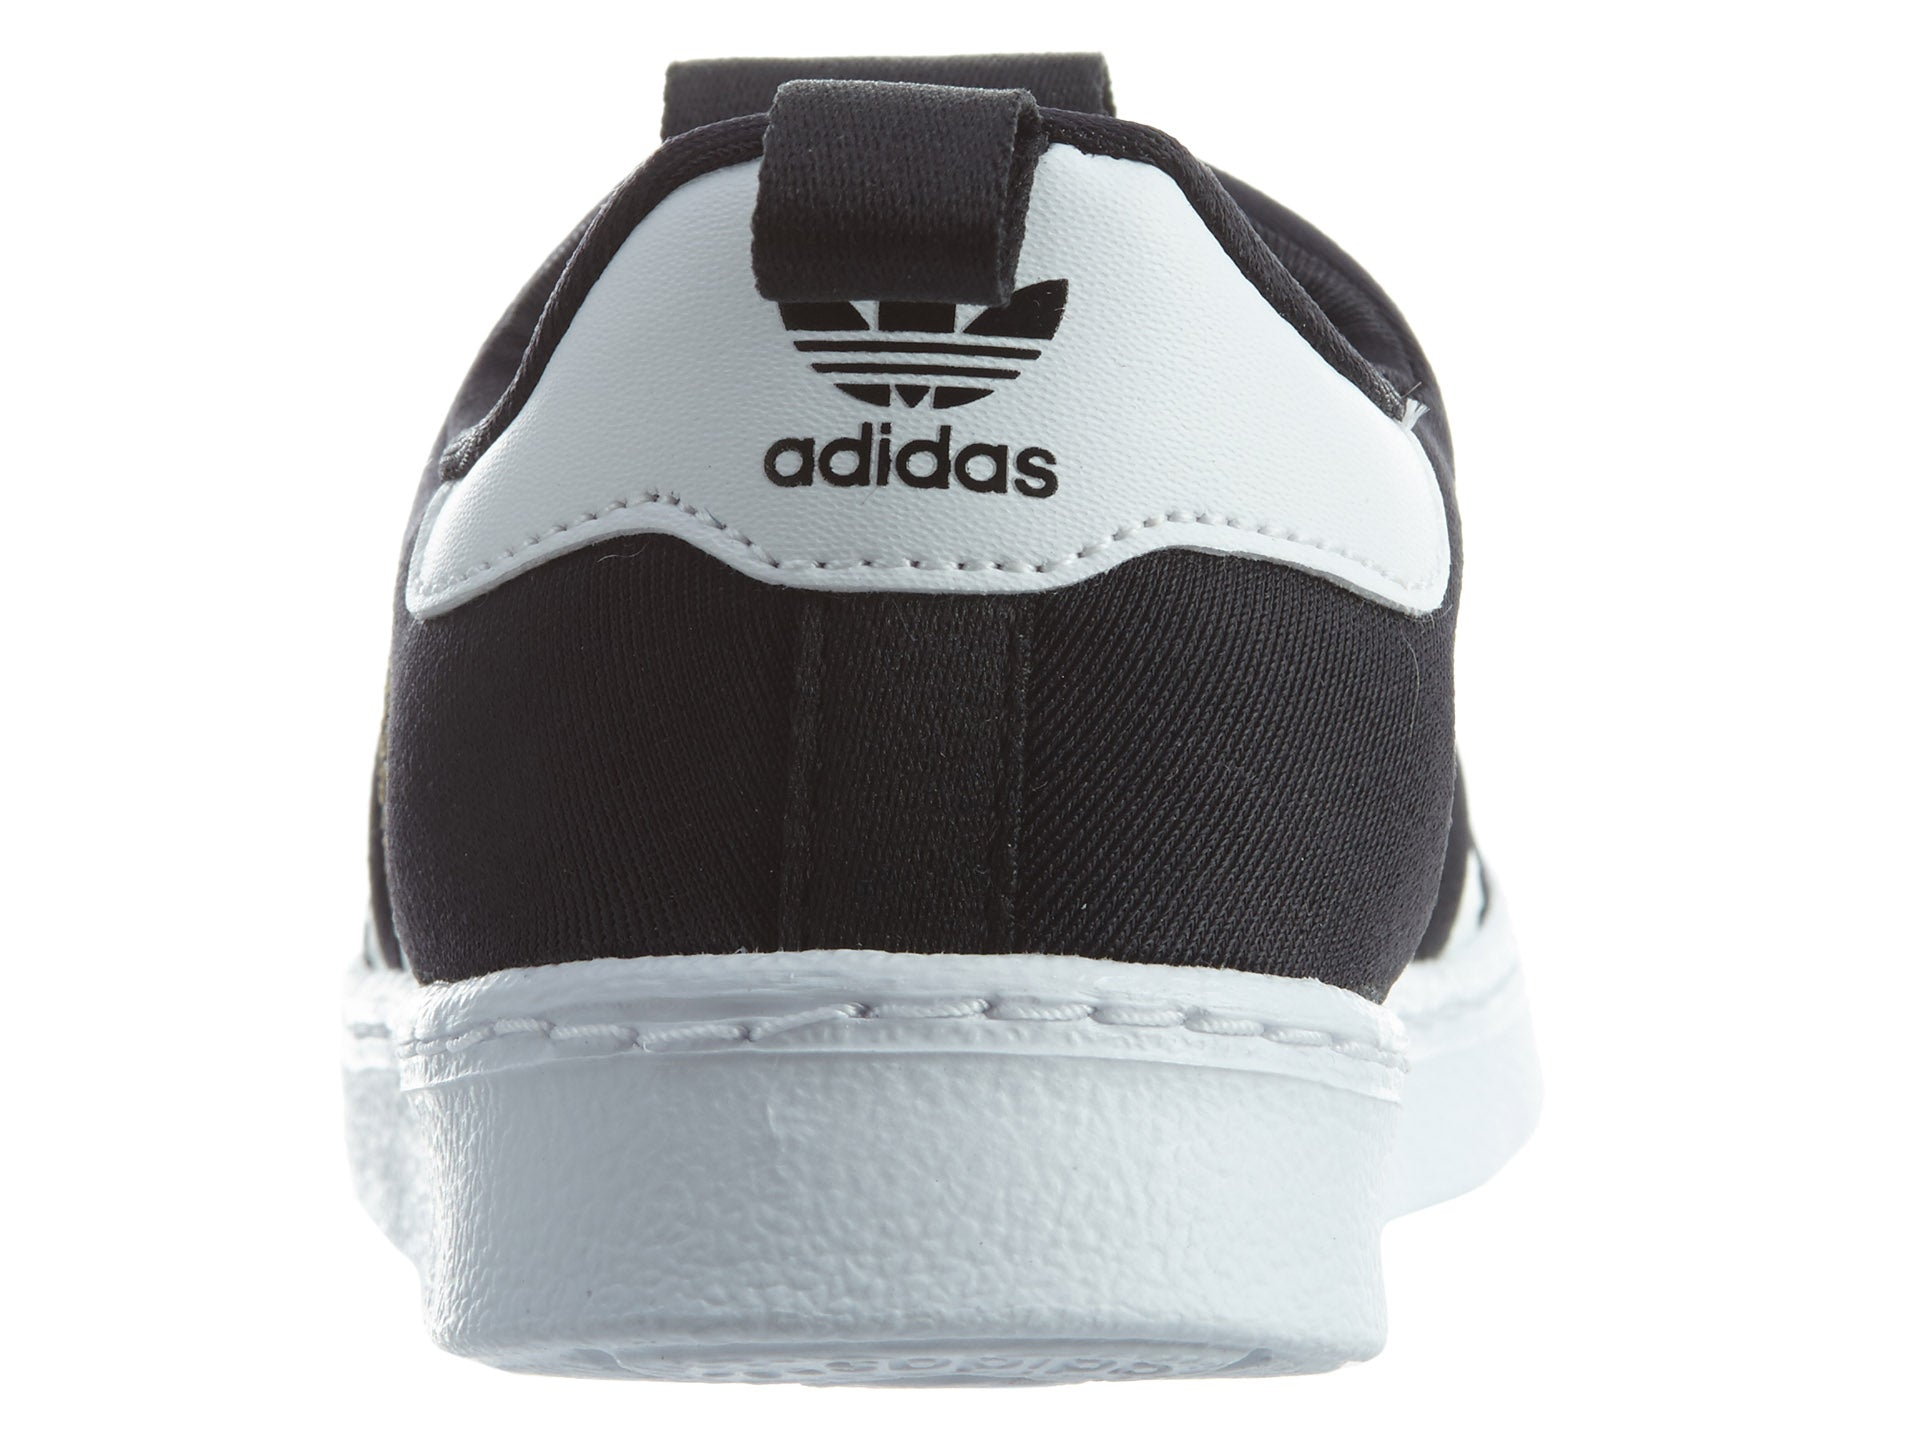 9ee49f79c10e70 Adidas Superstar 360 I Toddlers Style   S82711. ADIDAS   Baby   Toddler  Shoes